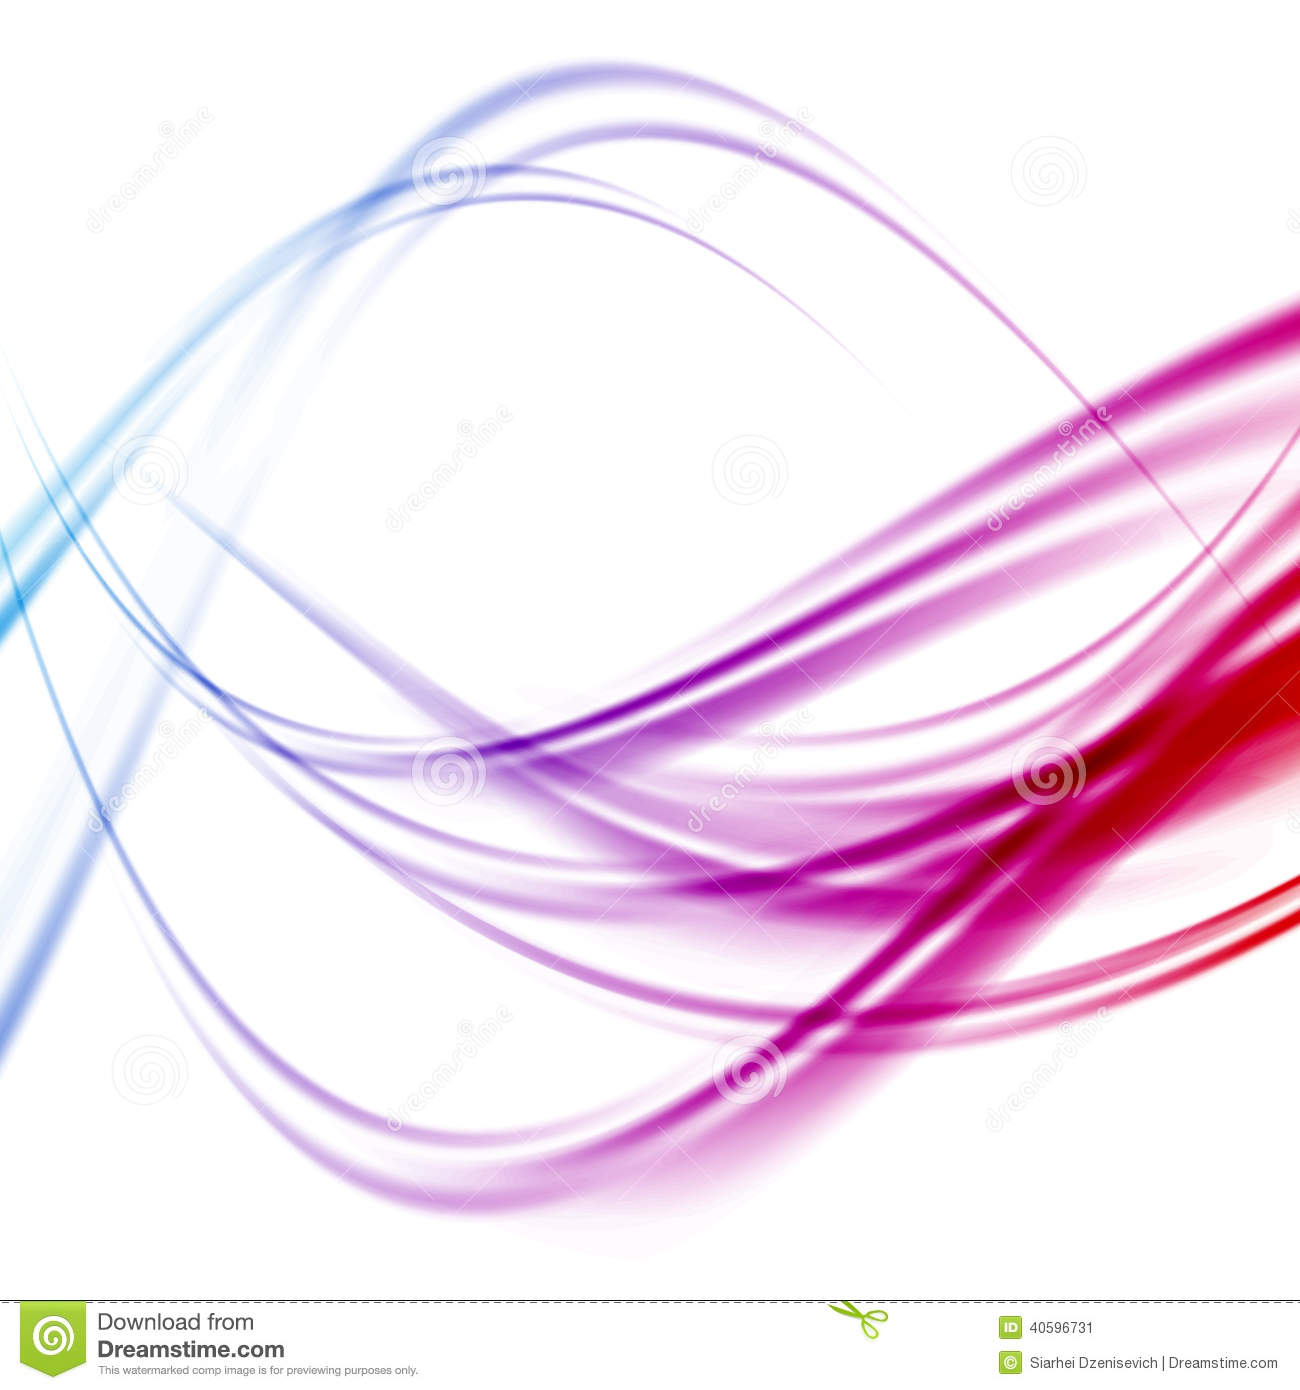 Vector Drawing Lines Quotes : Abstract bright transparent swoosh lines background stock